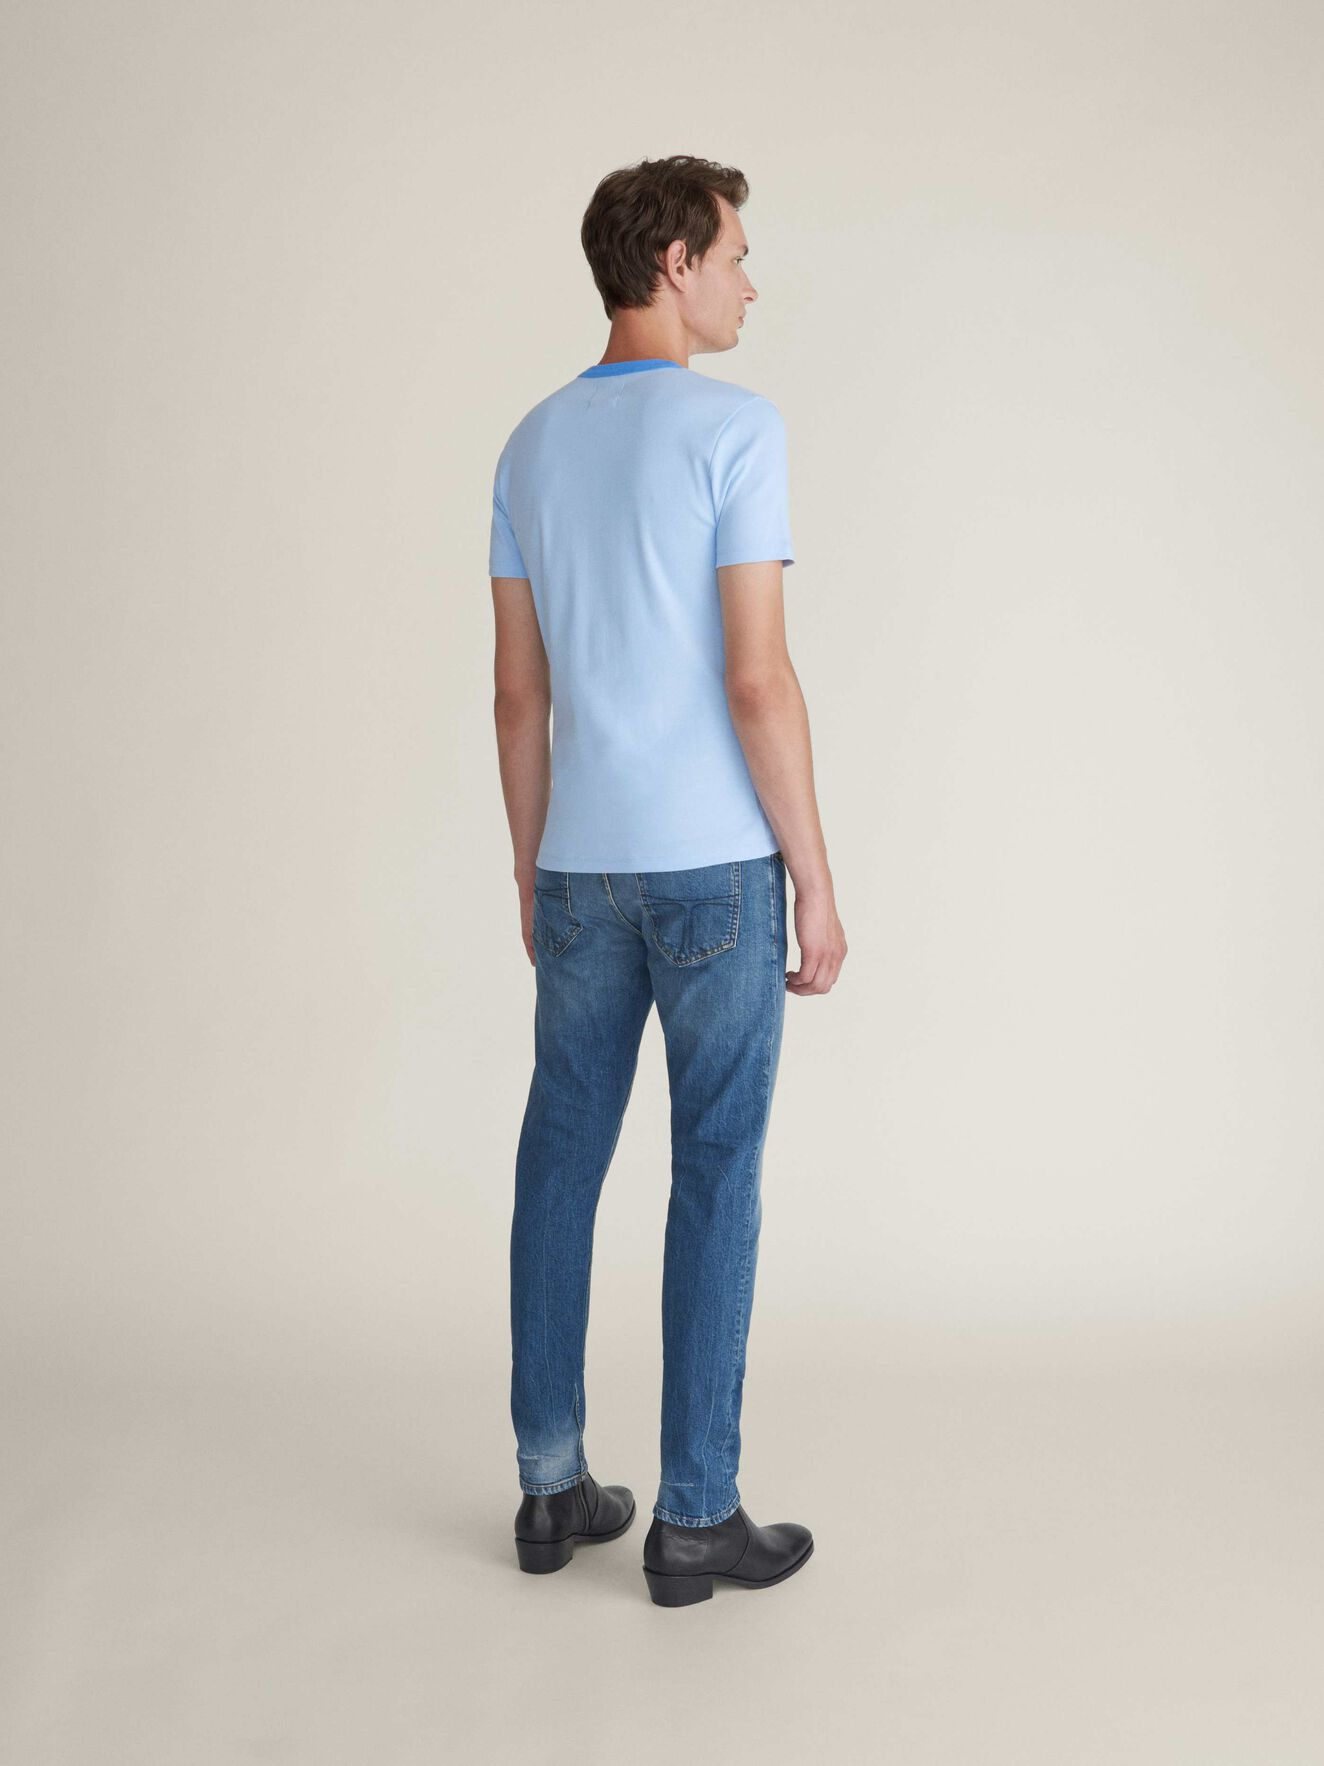 Essek T-Shirt in Chambray Blue from Tiger of Sweden